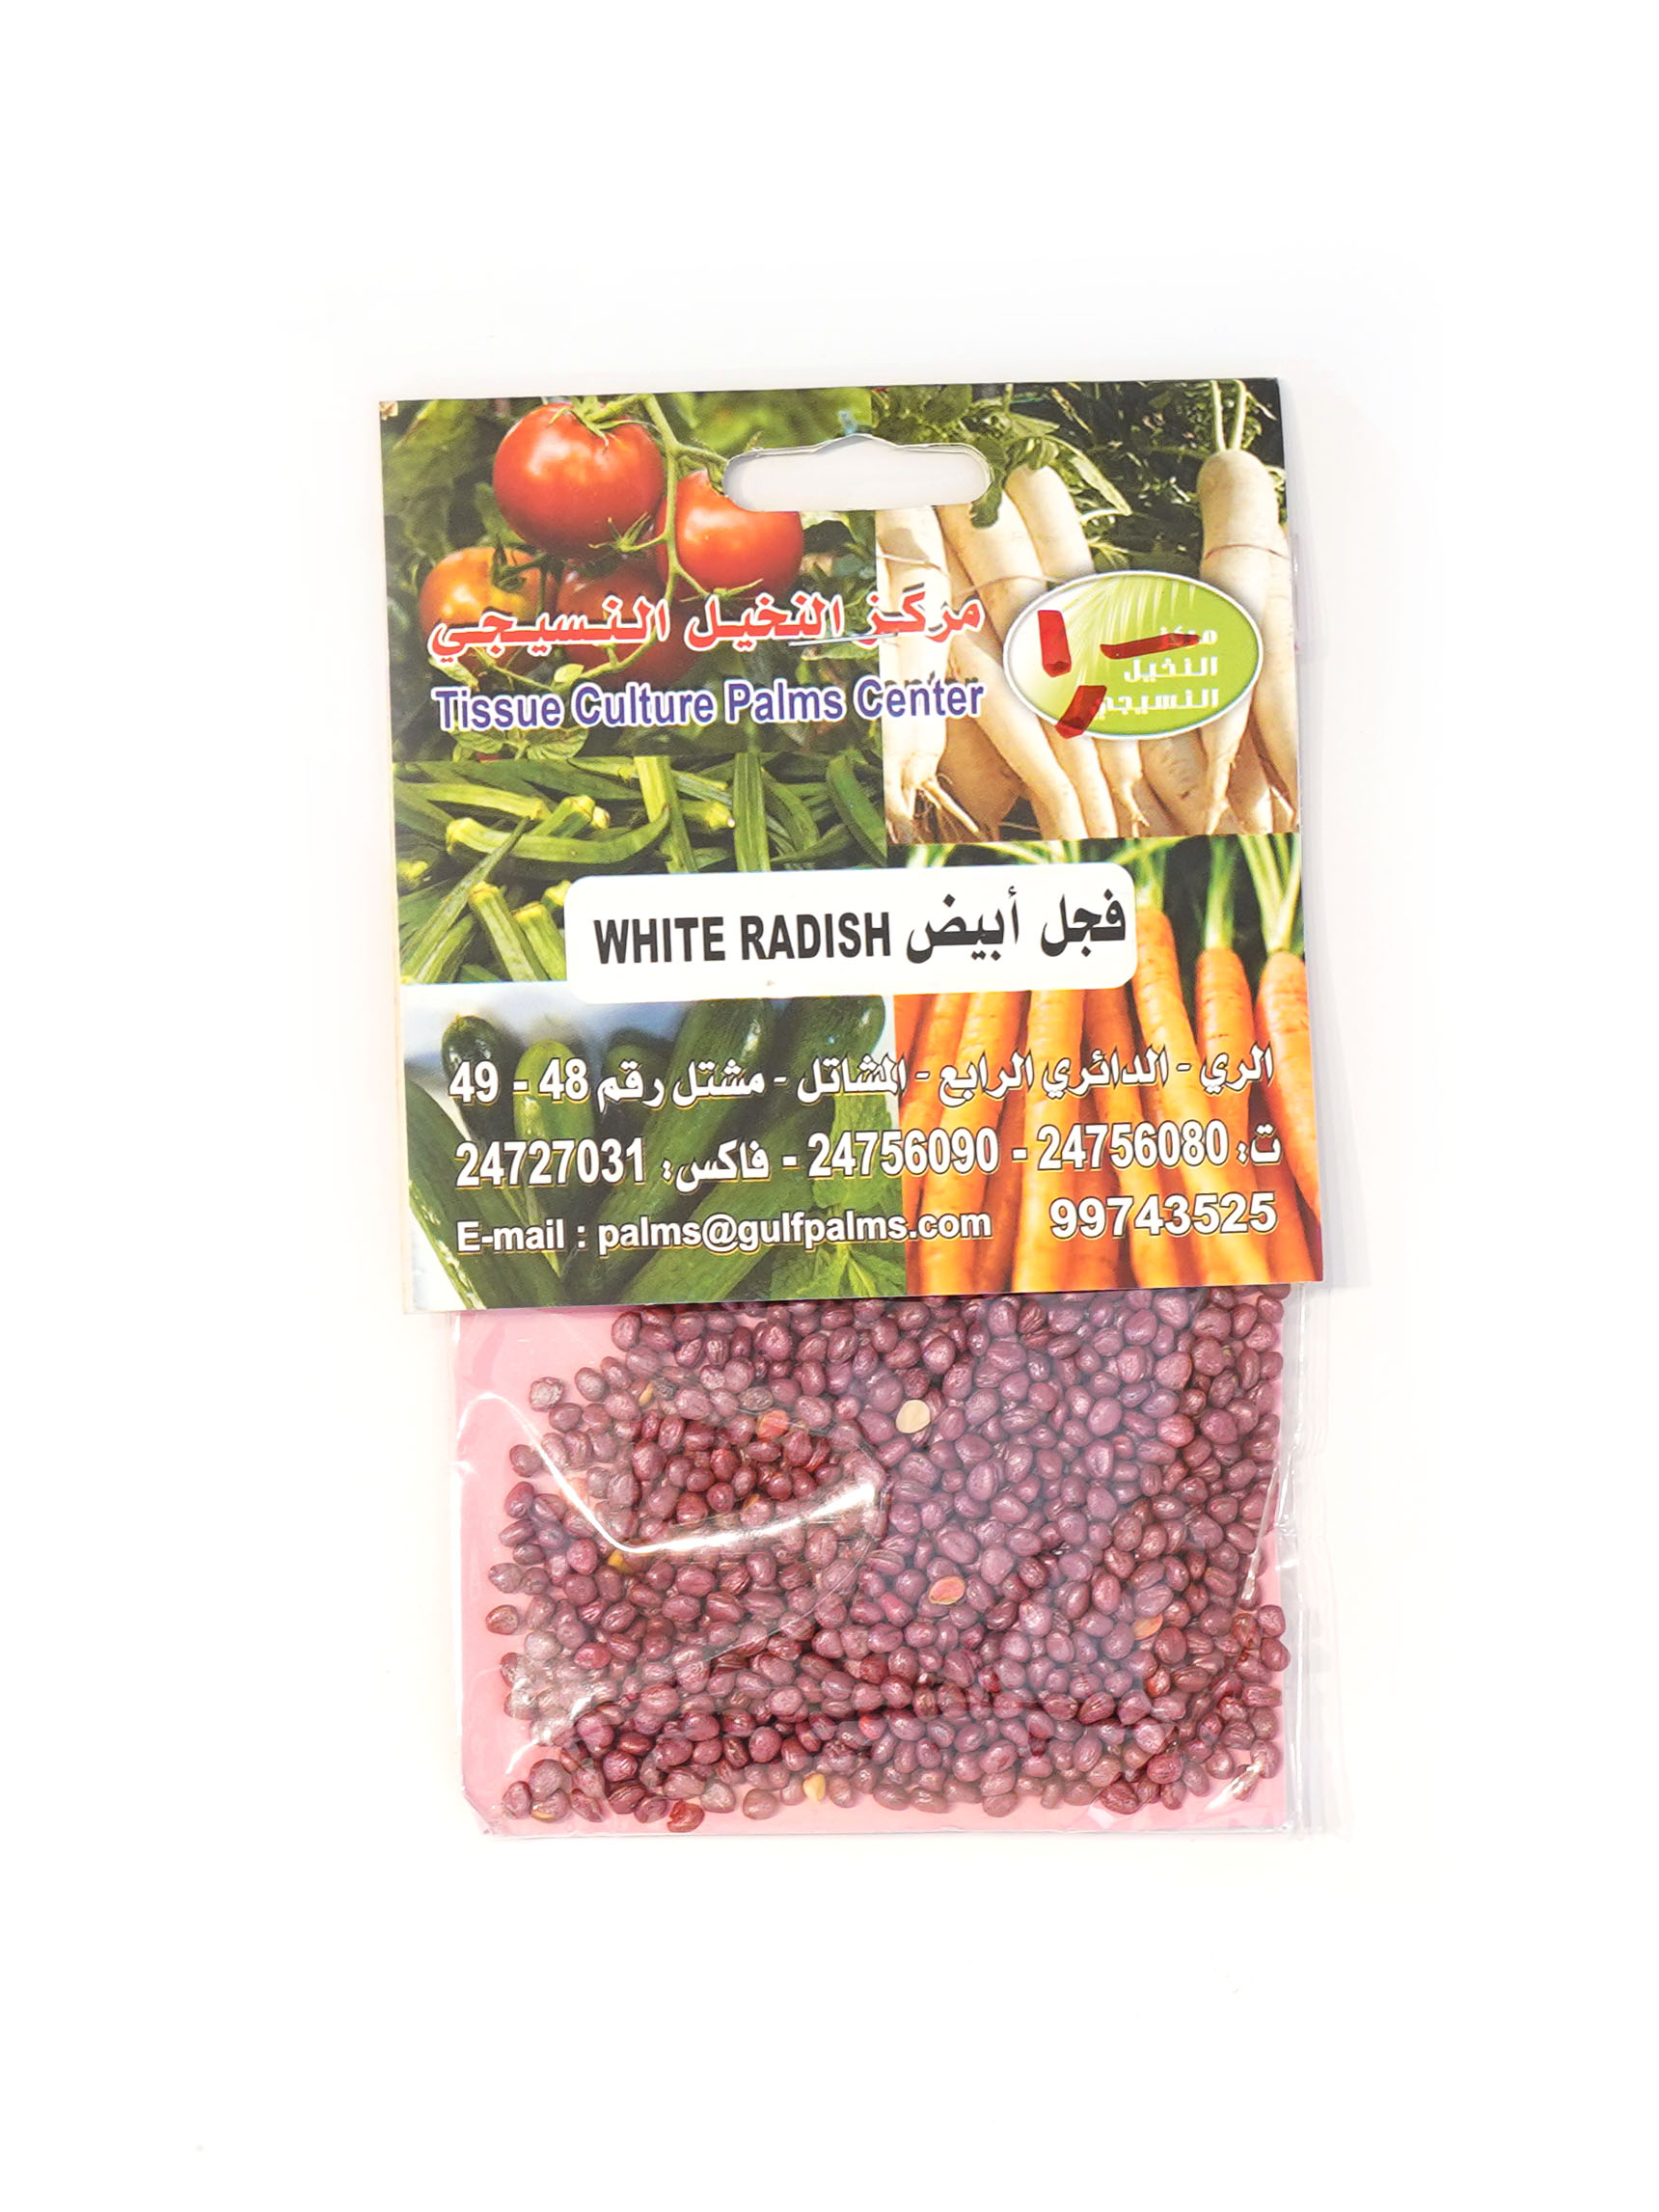 White Radish Seeds Fruits and Vegetables